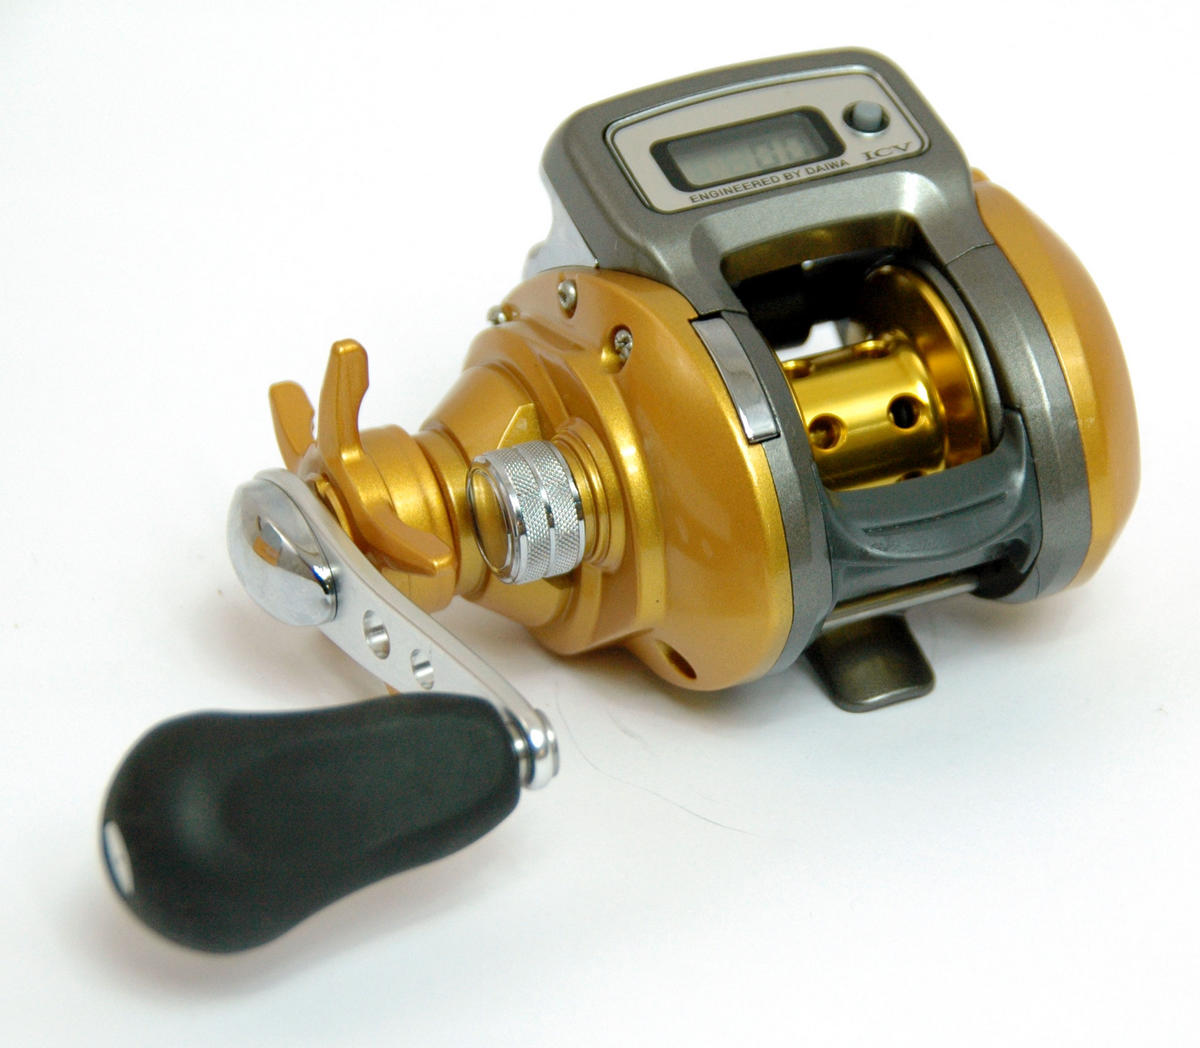 Clearance daiwa it 39 s icv 150l left hand wind multiplier for Line counter fishing reels